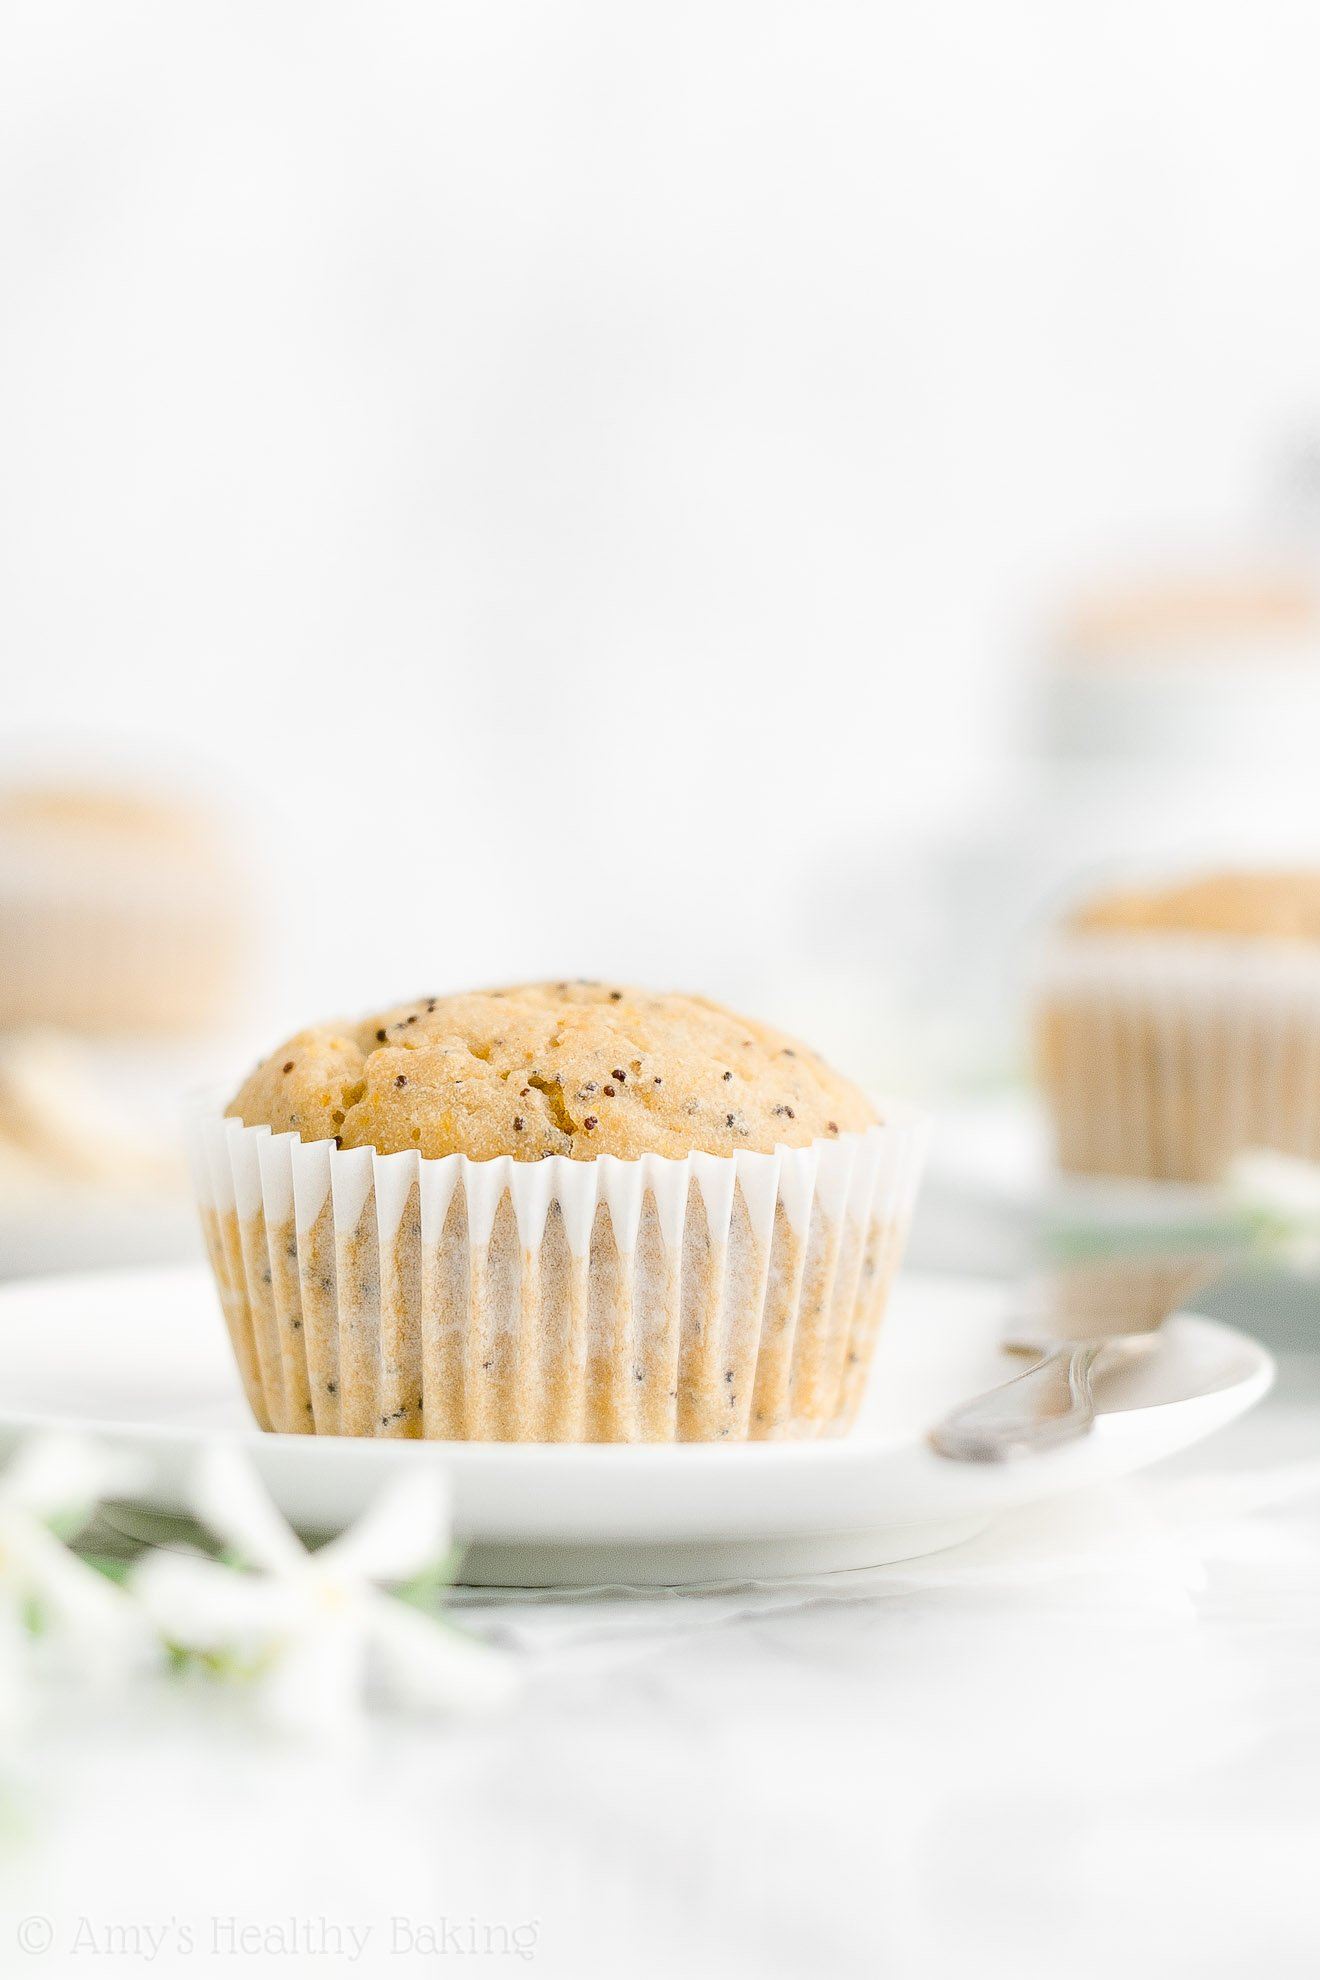 Best Easy Healthy Homemade Low Calorie Dairy Free Lemon Poppy Seed Muffins